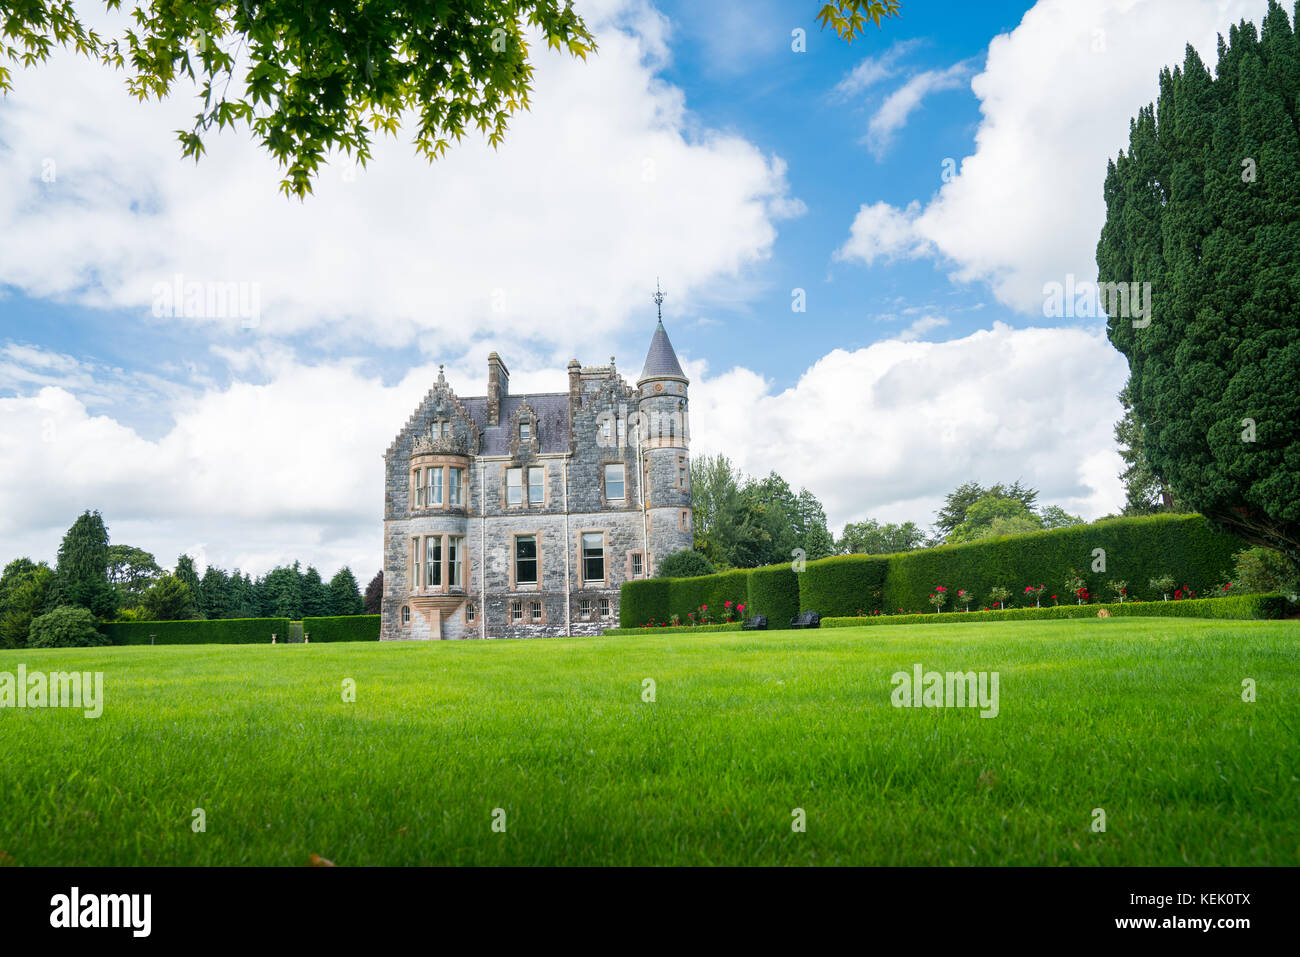 Large green lawn and gardens in front of distant stone castle under blue sky with large white clouds. - Stock Image